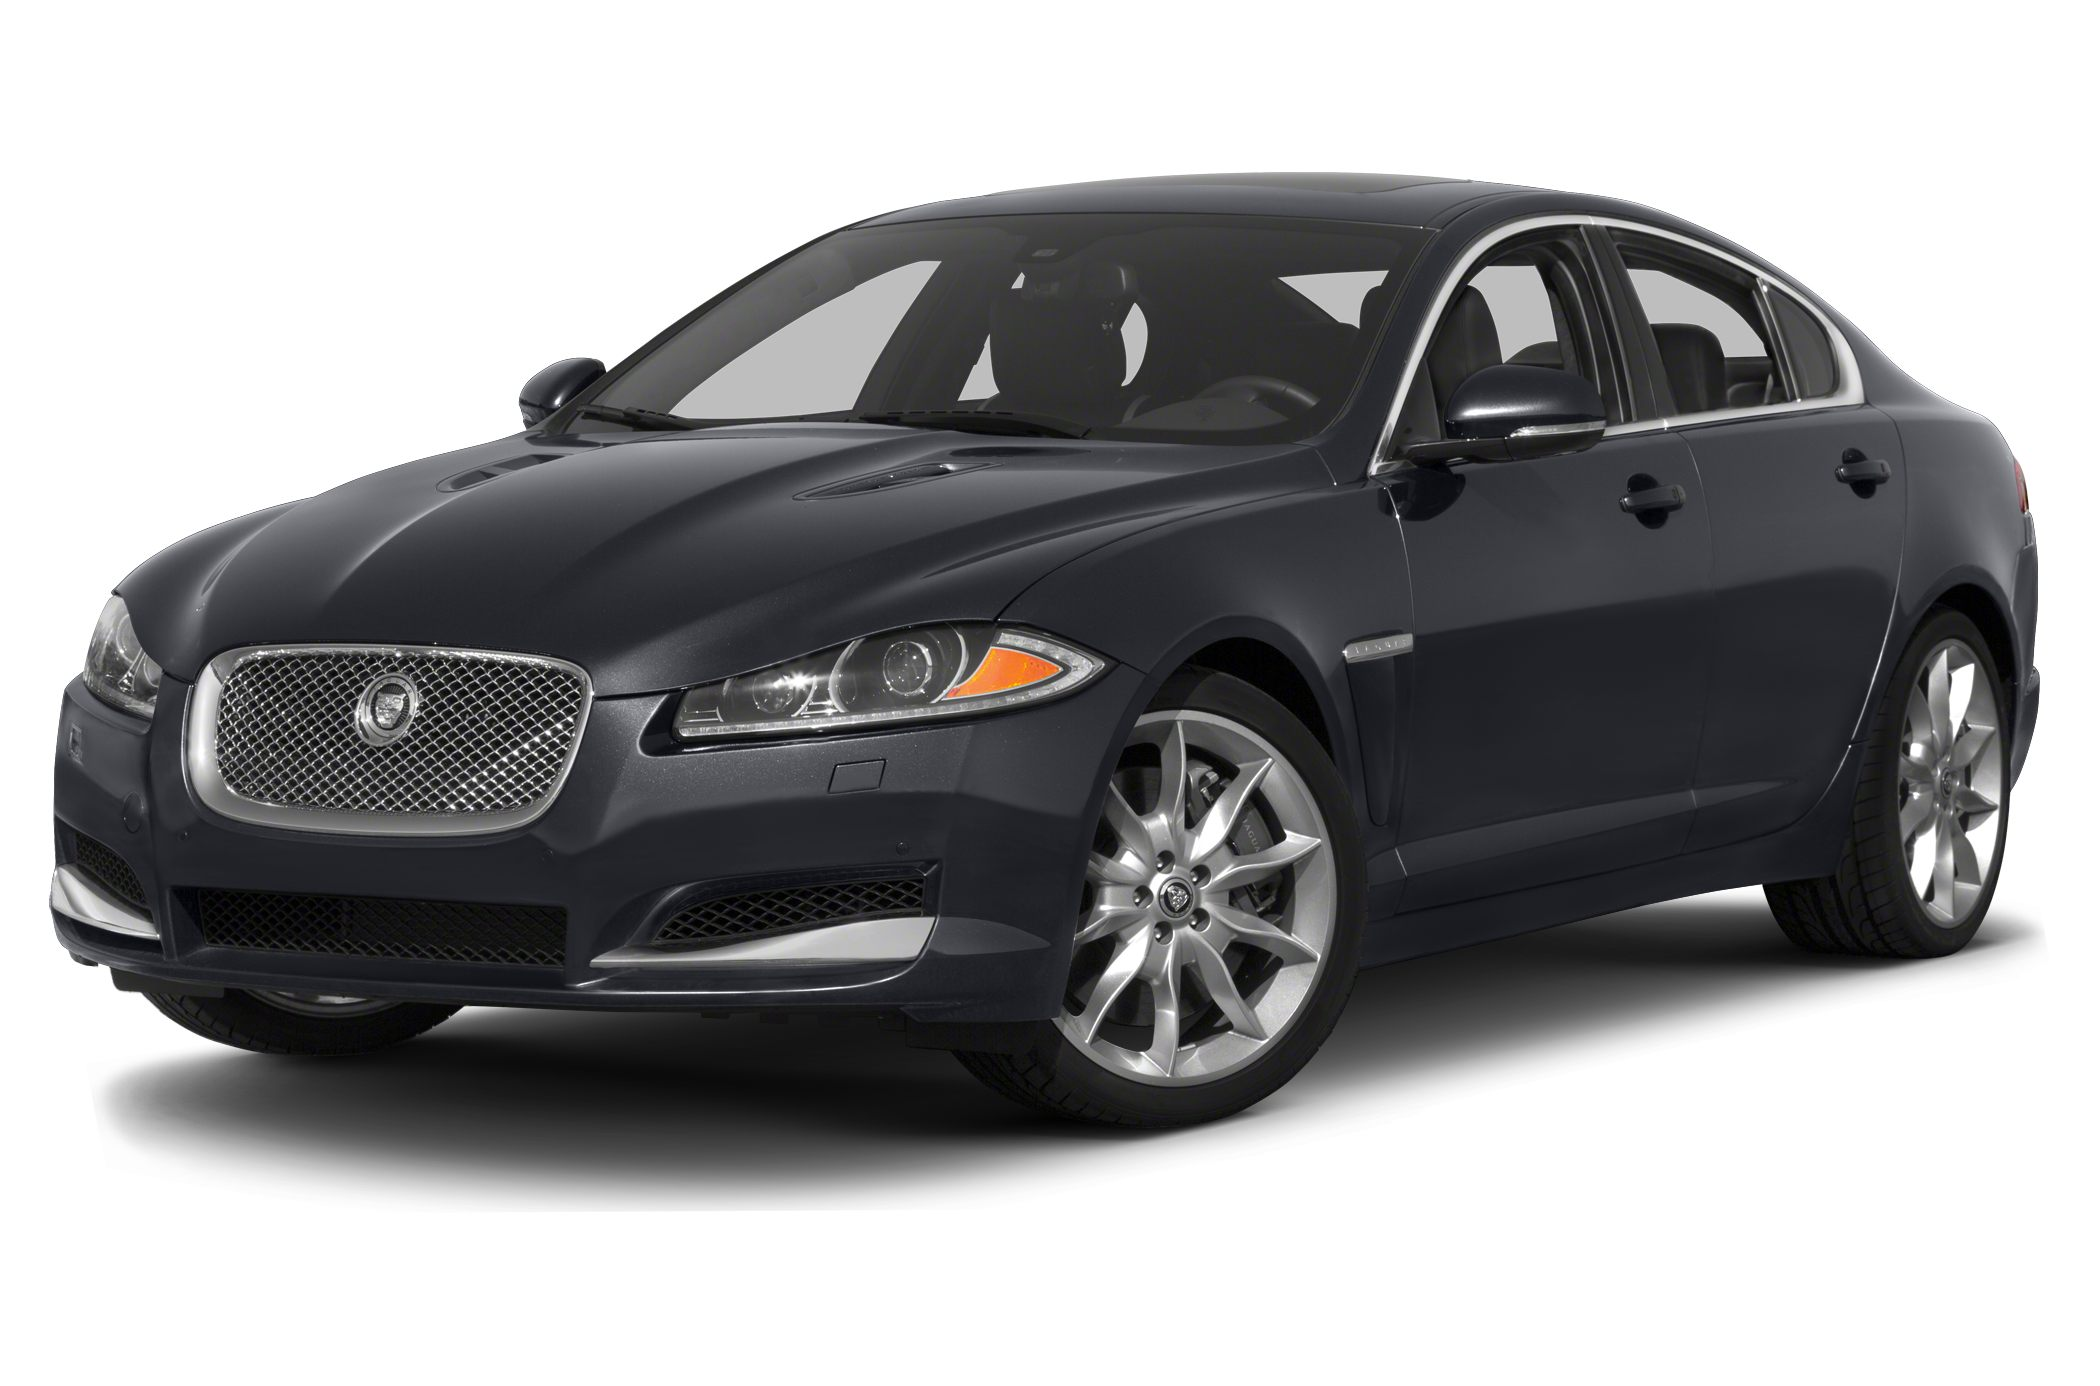 2013 Jaguar XF V6 SC 1 OWNER CLEAN CARFAX Convenience Package Blind Spot Monitor Electric Rear